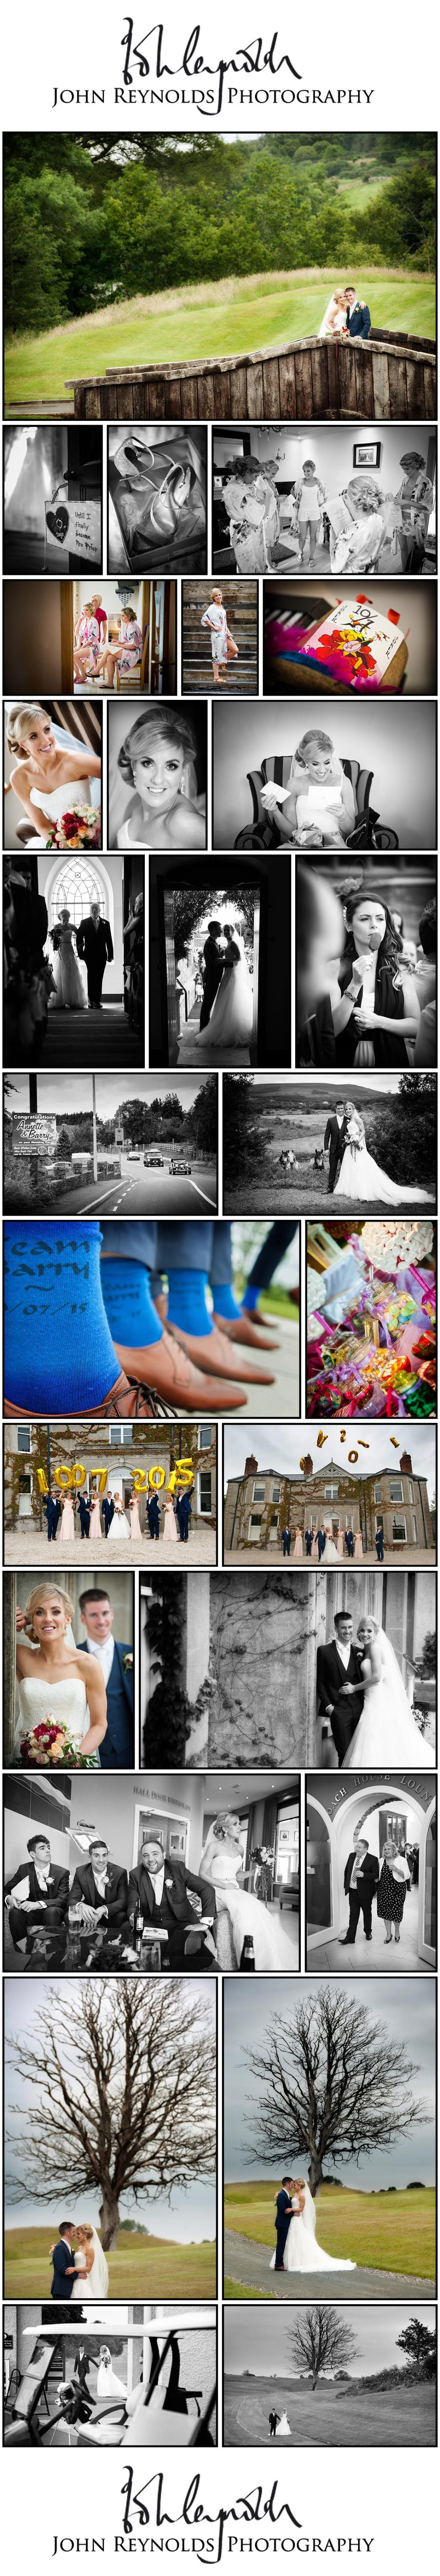 Blog Collage-Annette & Barry